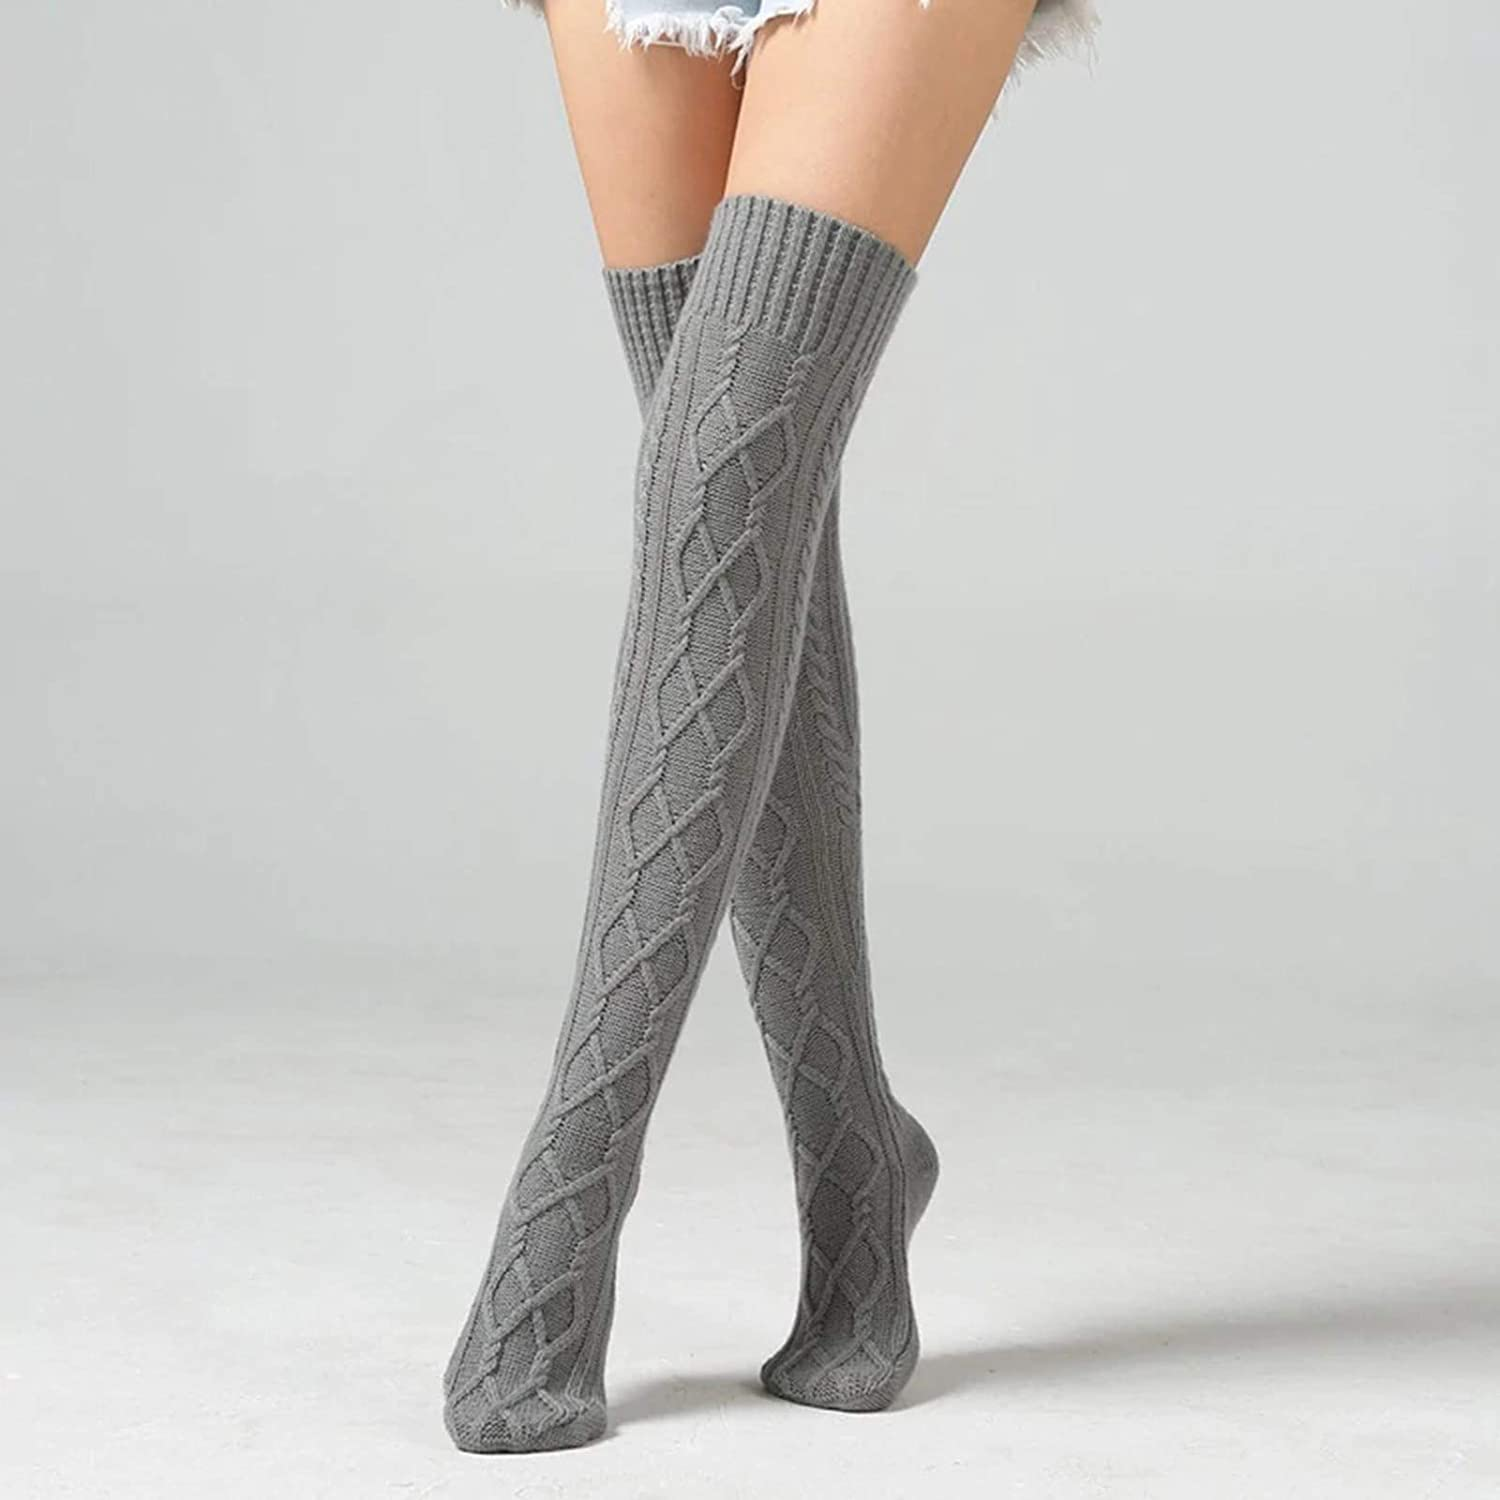 Women's Cable Knit Long Boot Stocking Socks Knee High Winter Leg WarmersThigh Stocking/ Casual/Ankle Socks